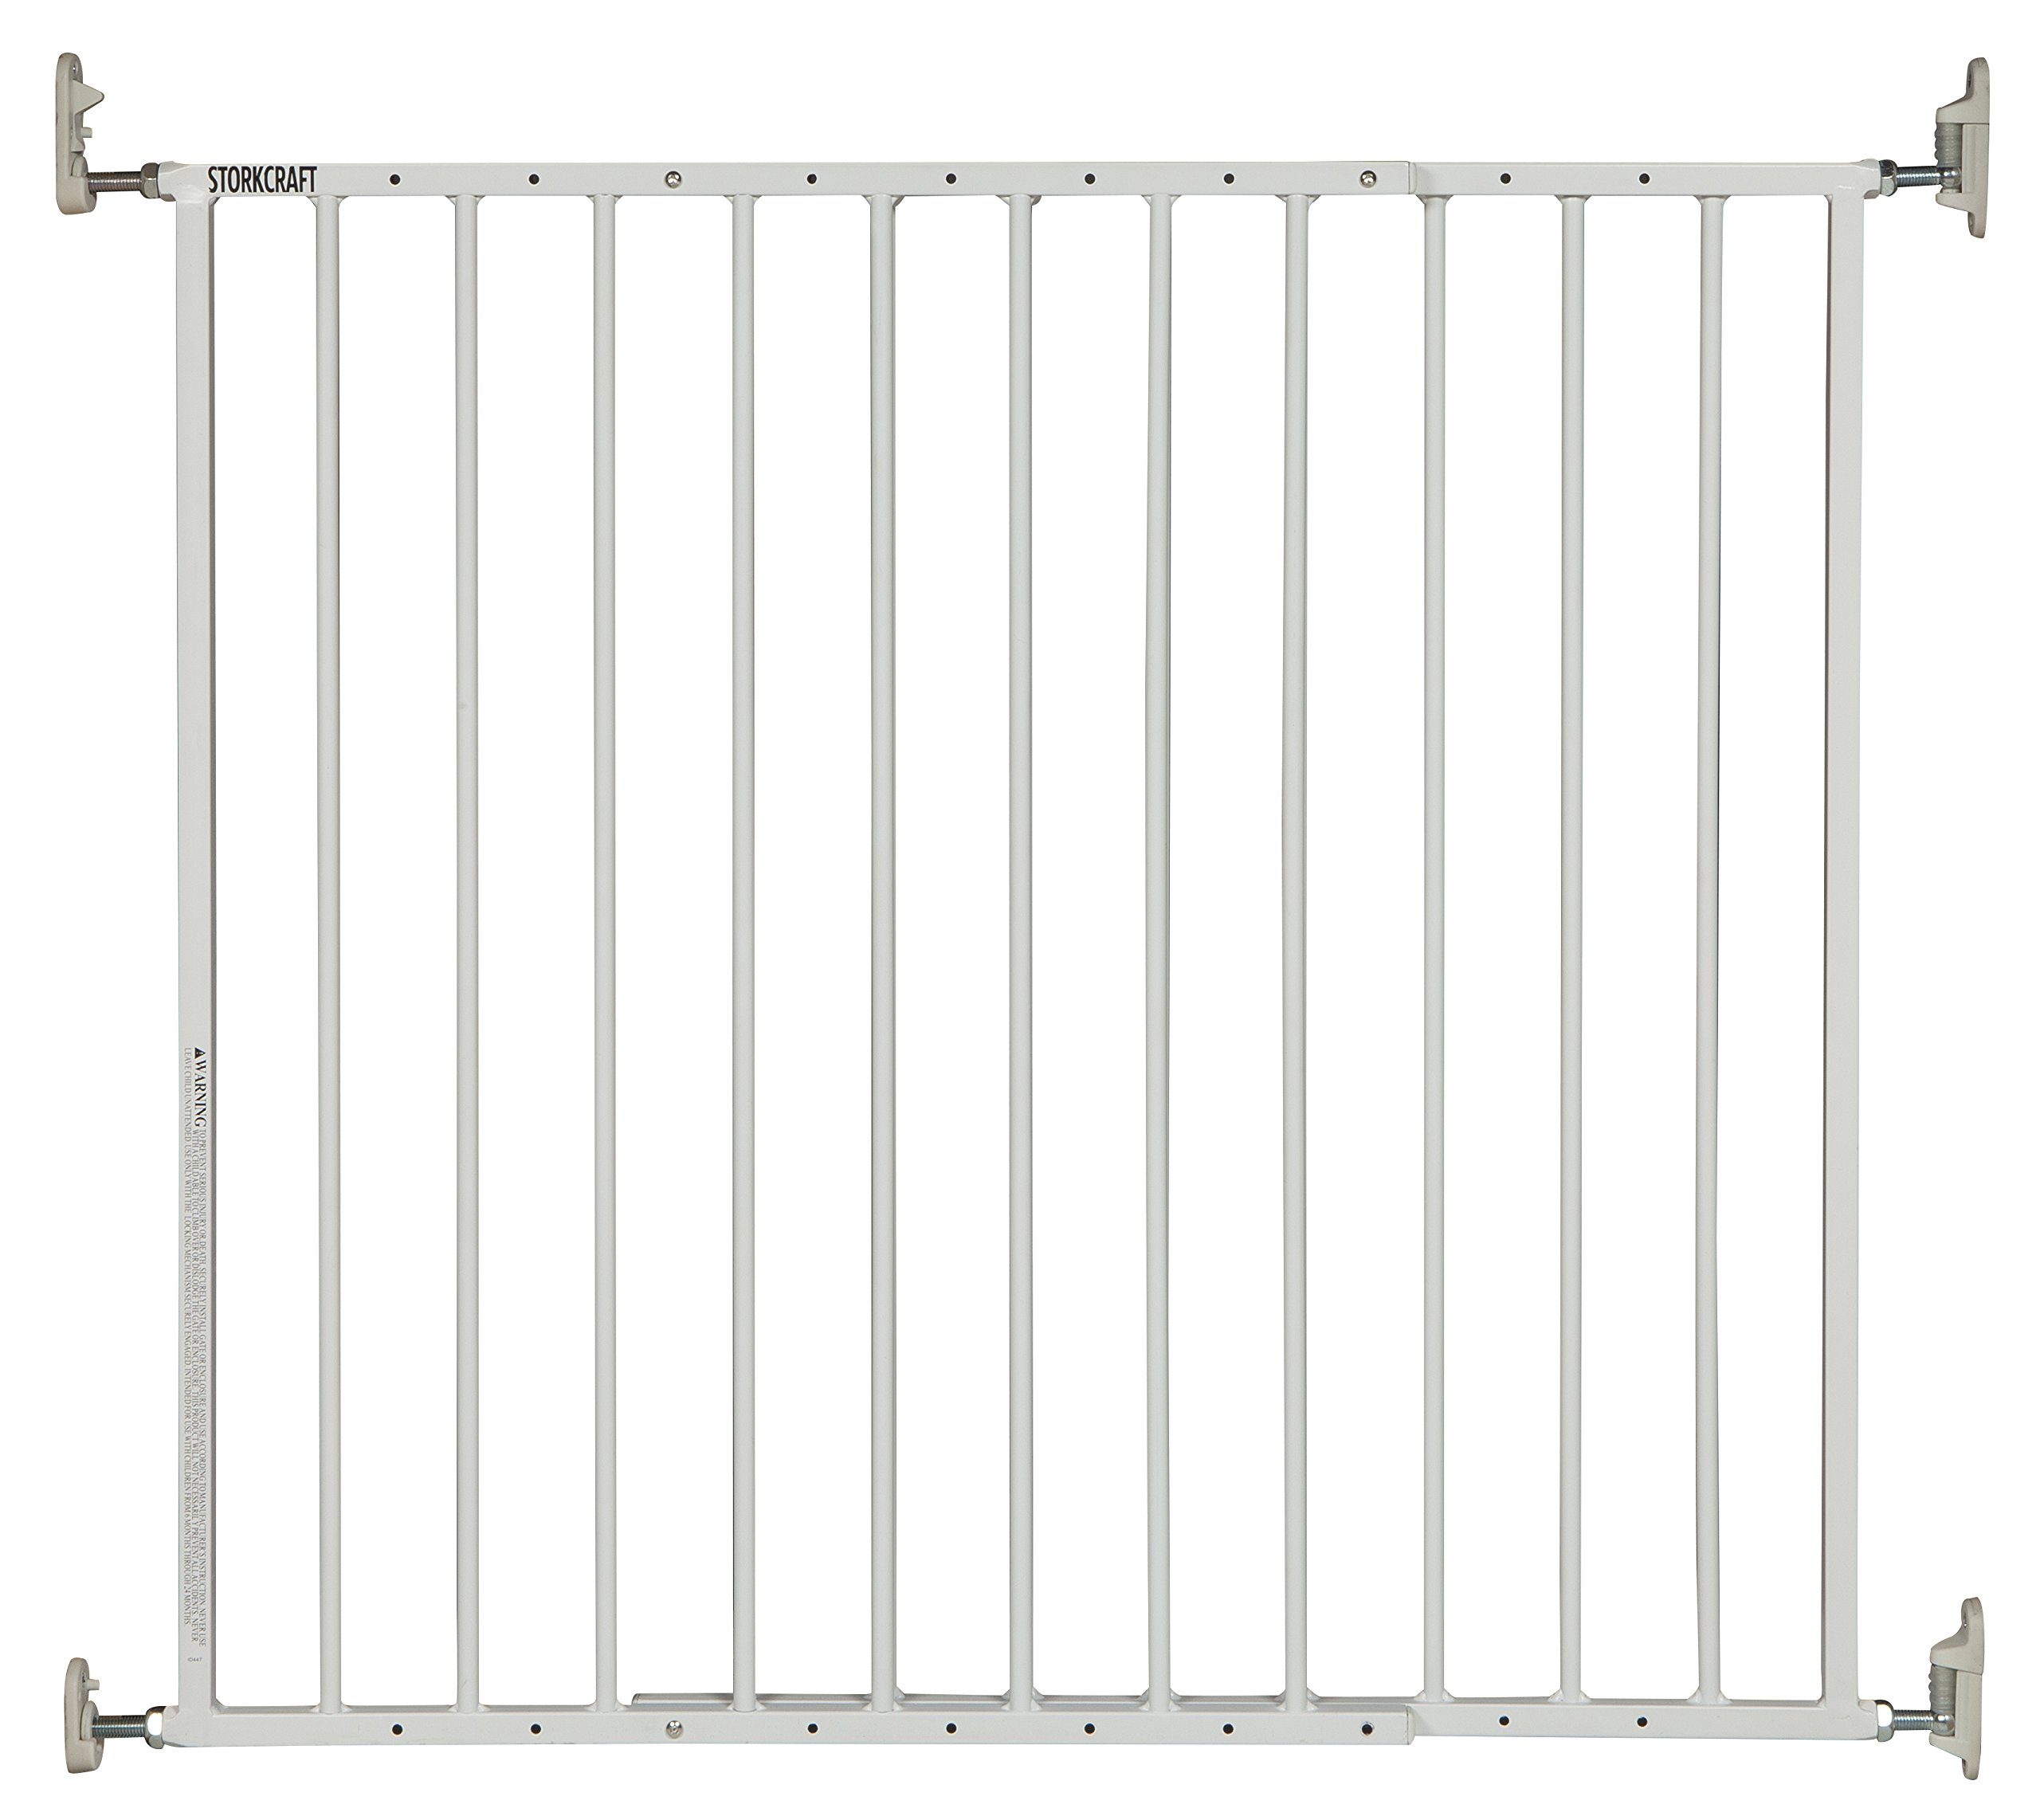 Storkcraft Easy Walk-Thru Metal Safety Gate, White, 29-inch Tall Safety Gate for Baby Dog Cat or Other Pets, One-Hand Quick-Release Lock, Adjustable Width 28.3-45.98 Inches